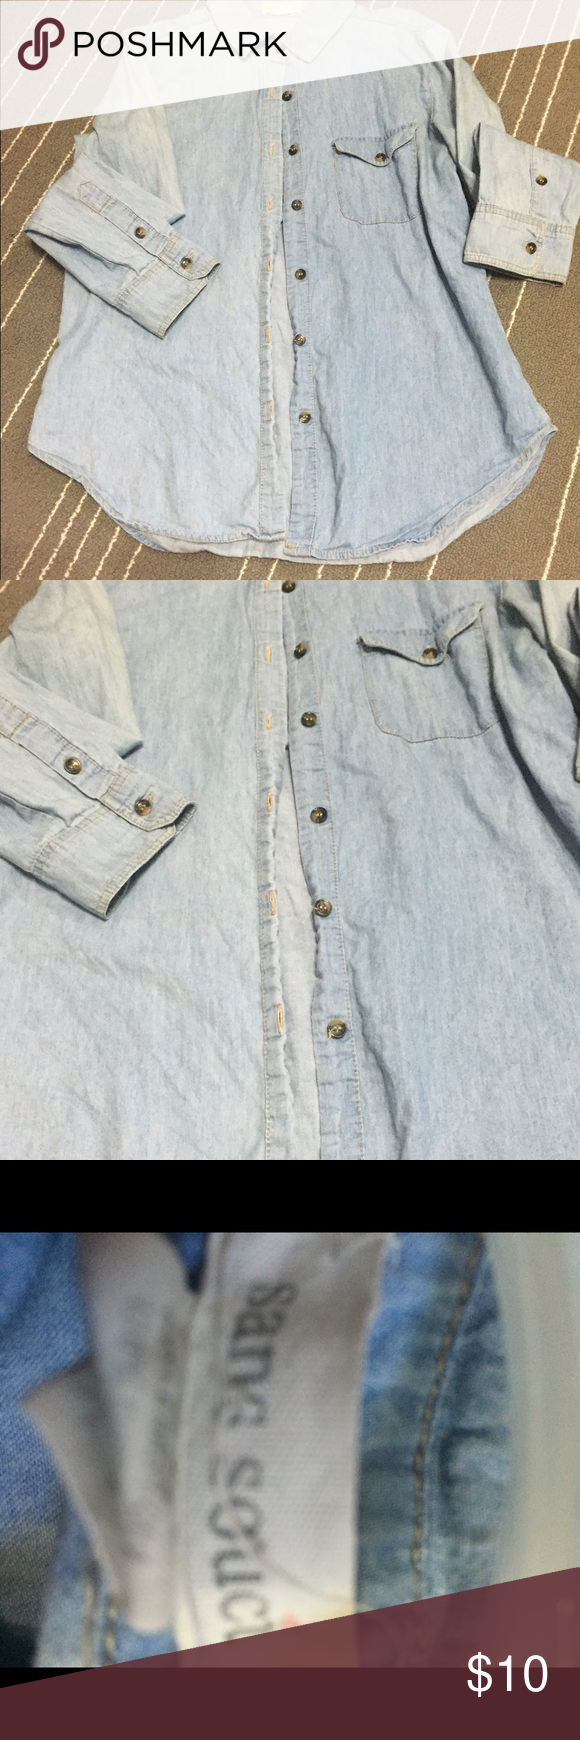 Long sleeve denim Size medium. Very cute with layers. Make offers or bundles for great deals Sans Souci Tops Button Down Shirts